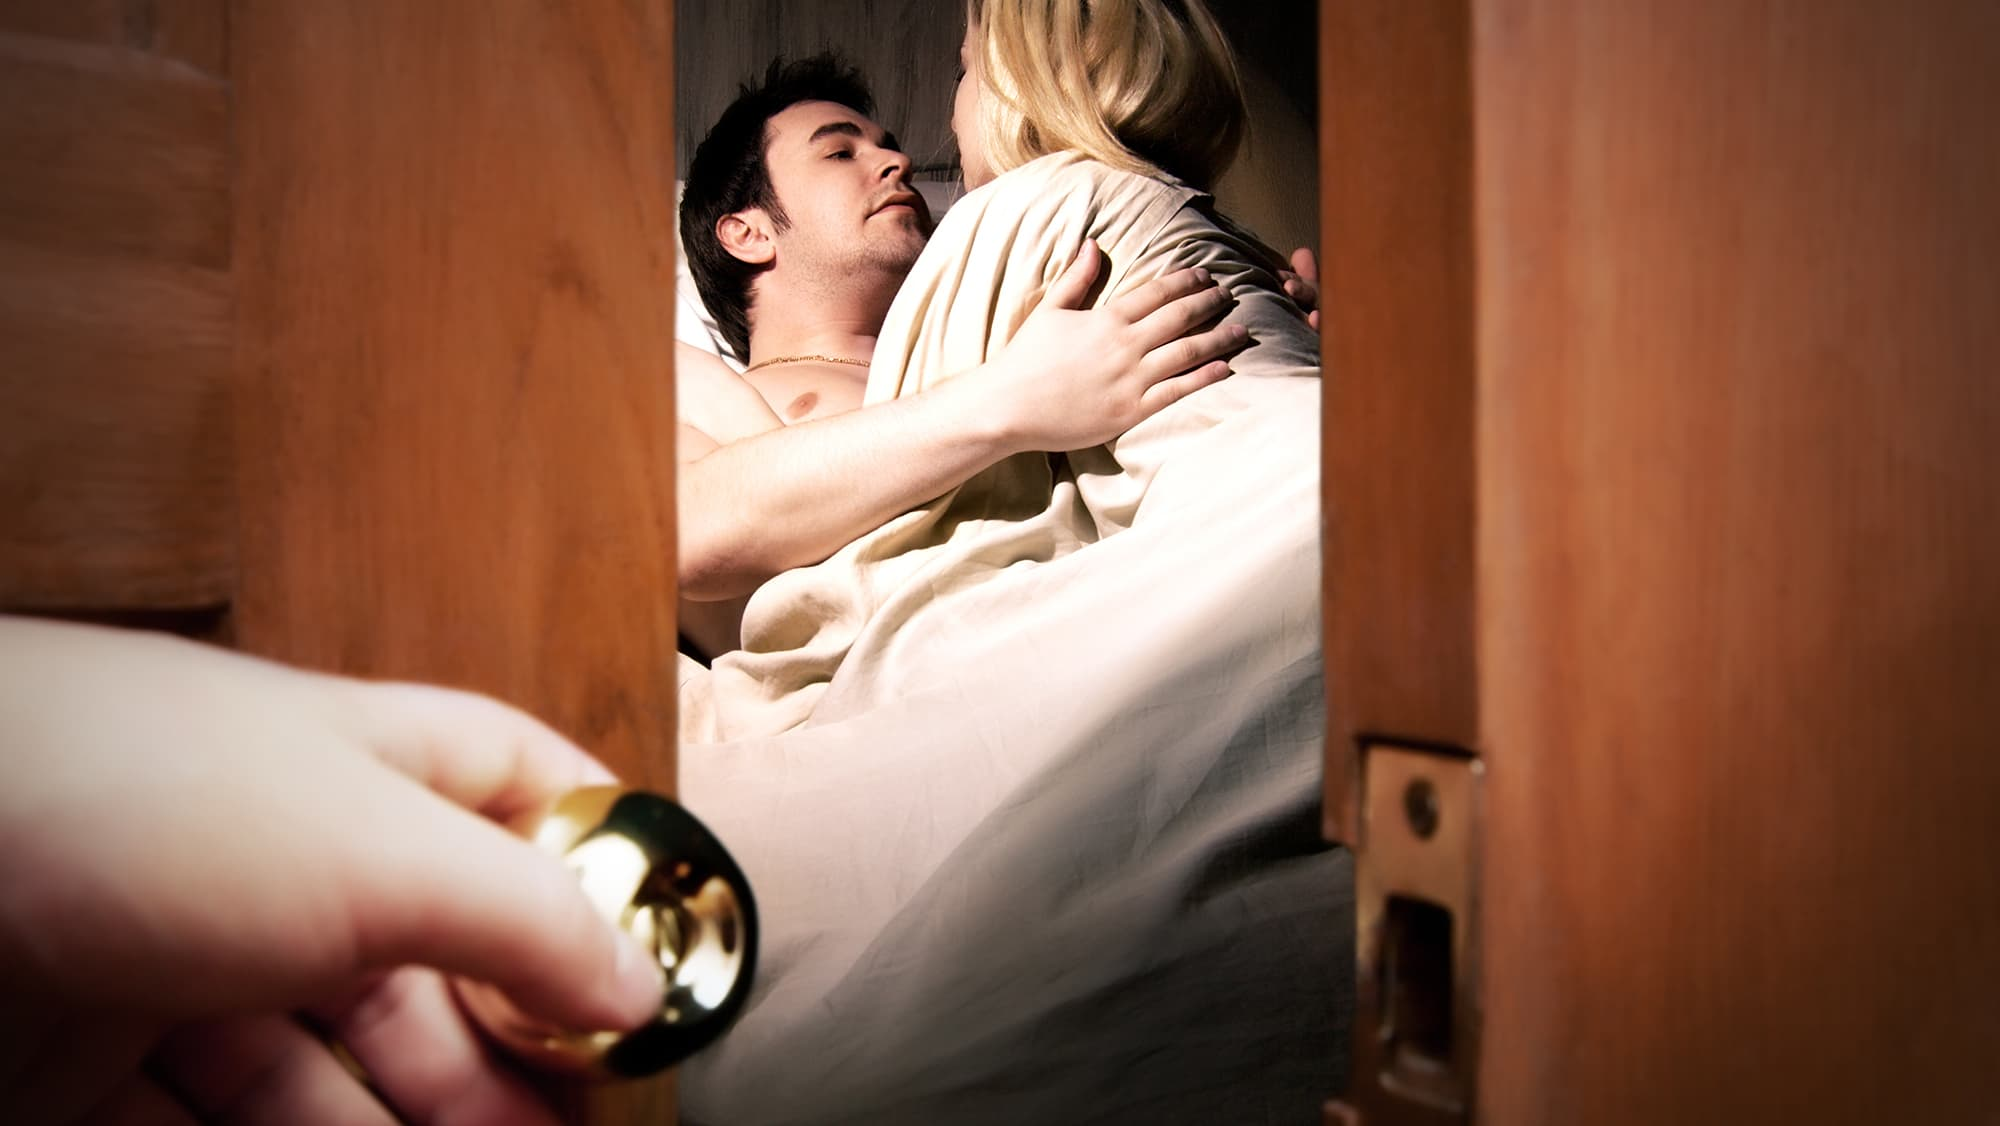 That extramarital affair is costing you a small fortune